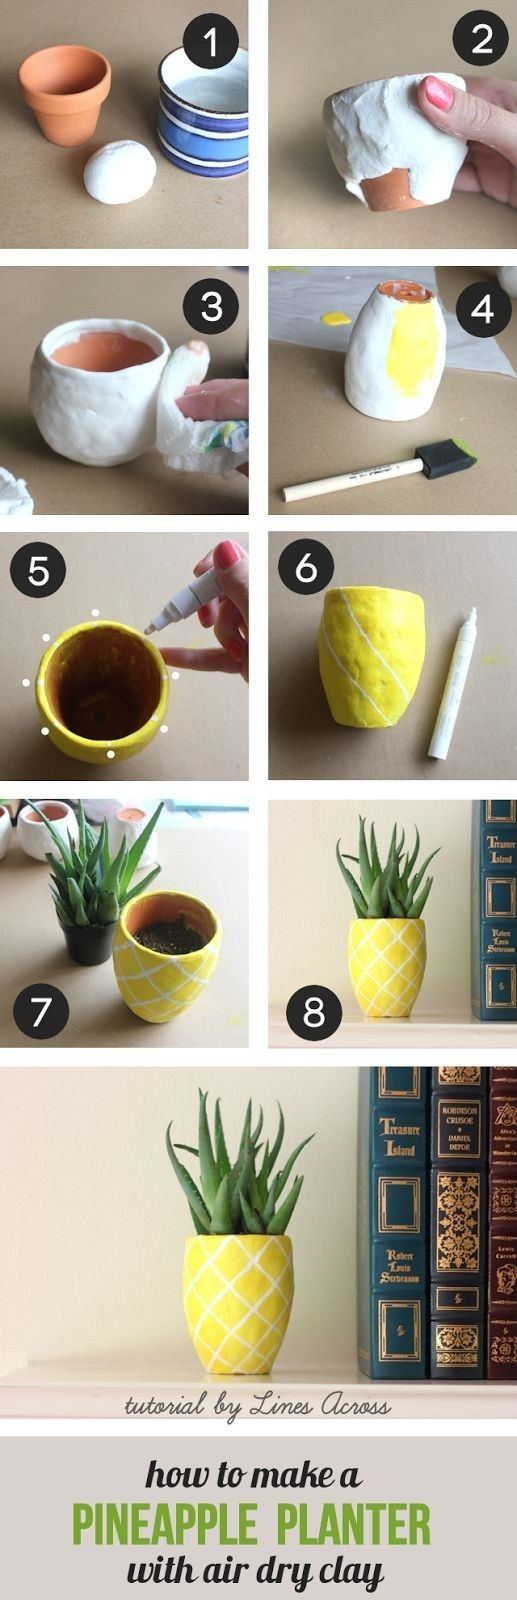 15 Cutest Diy Projects You Must Finish